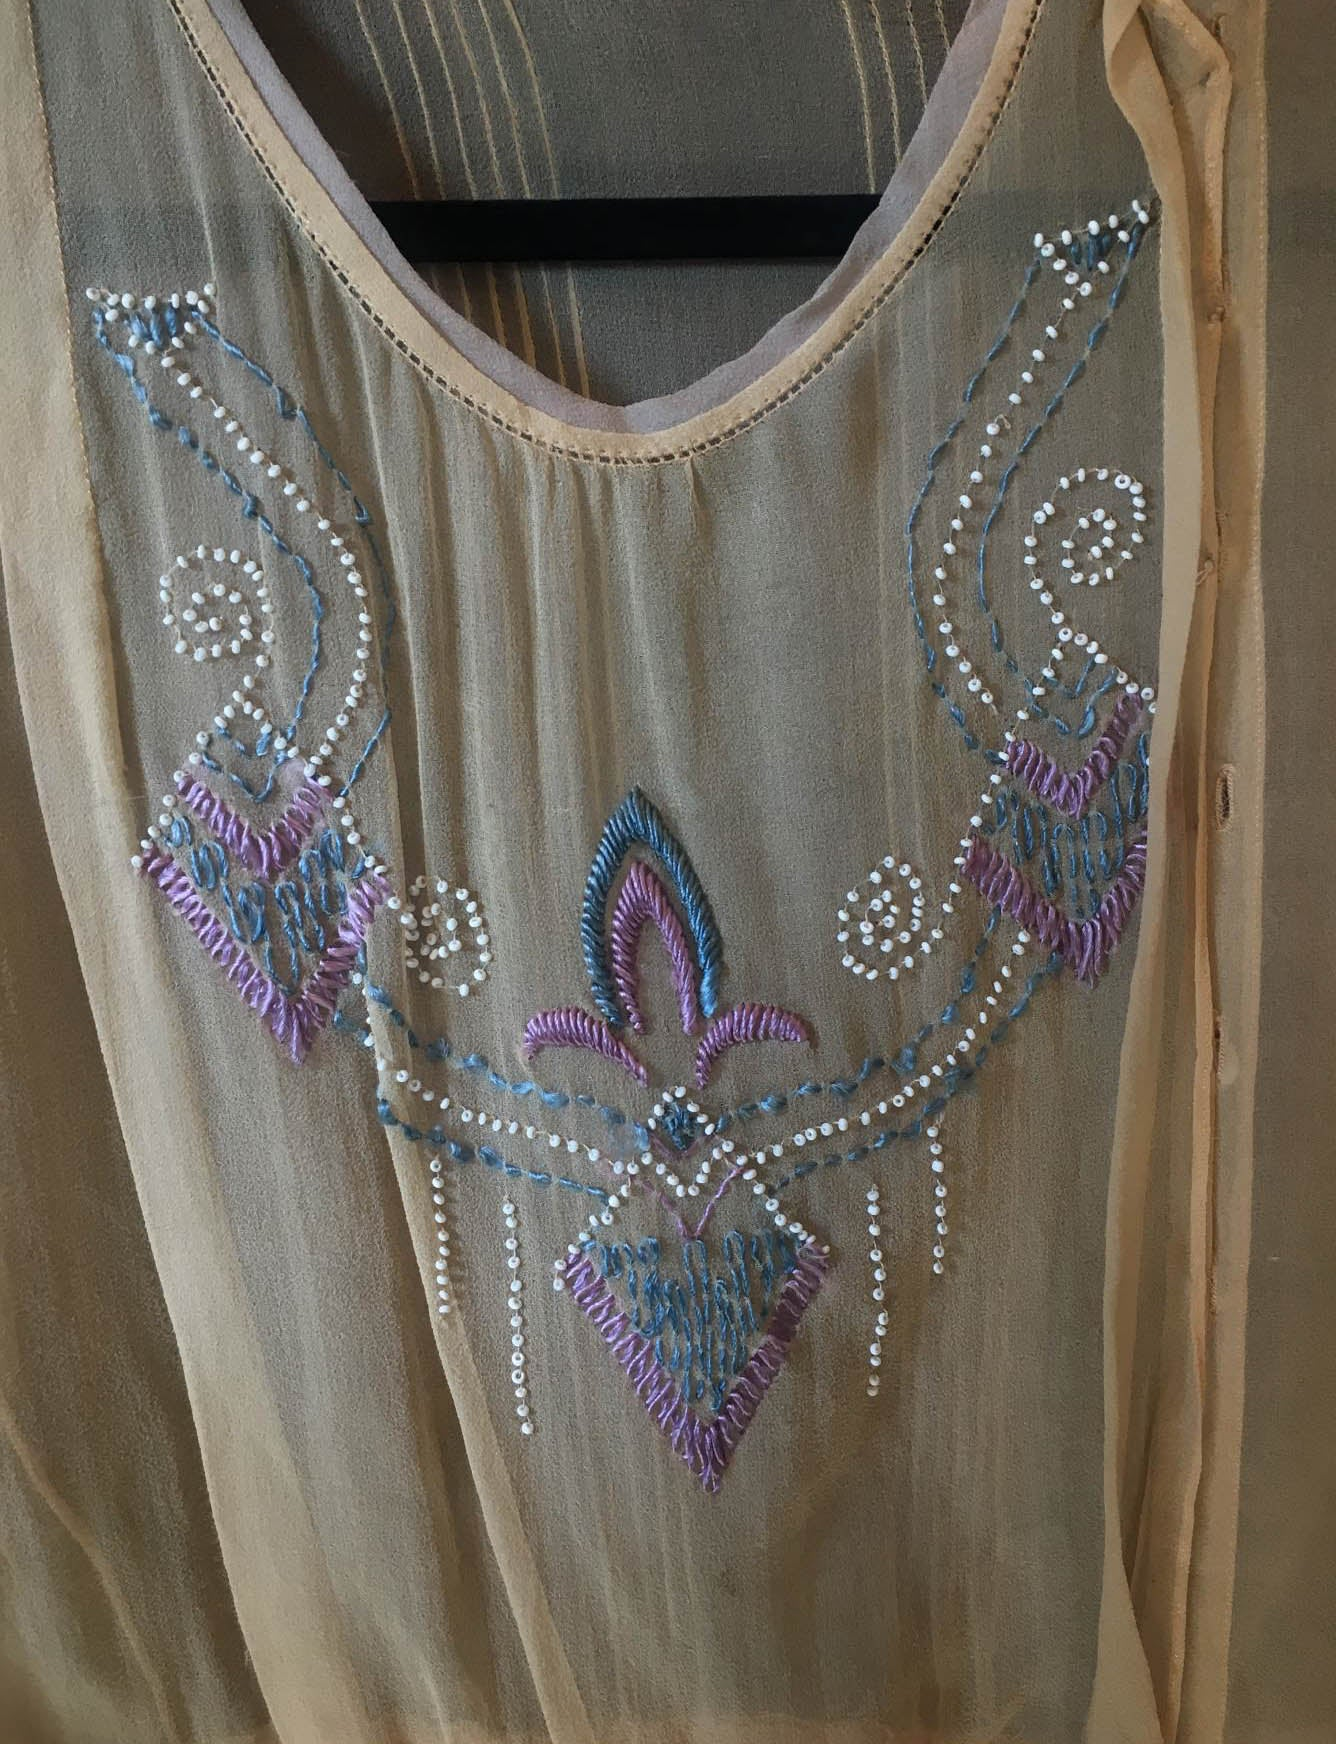 Women's Vintage Edwardian Sheer Embroidered Beaded Blouse - Small